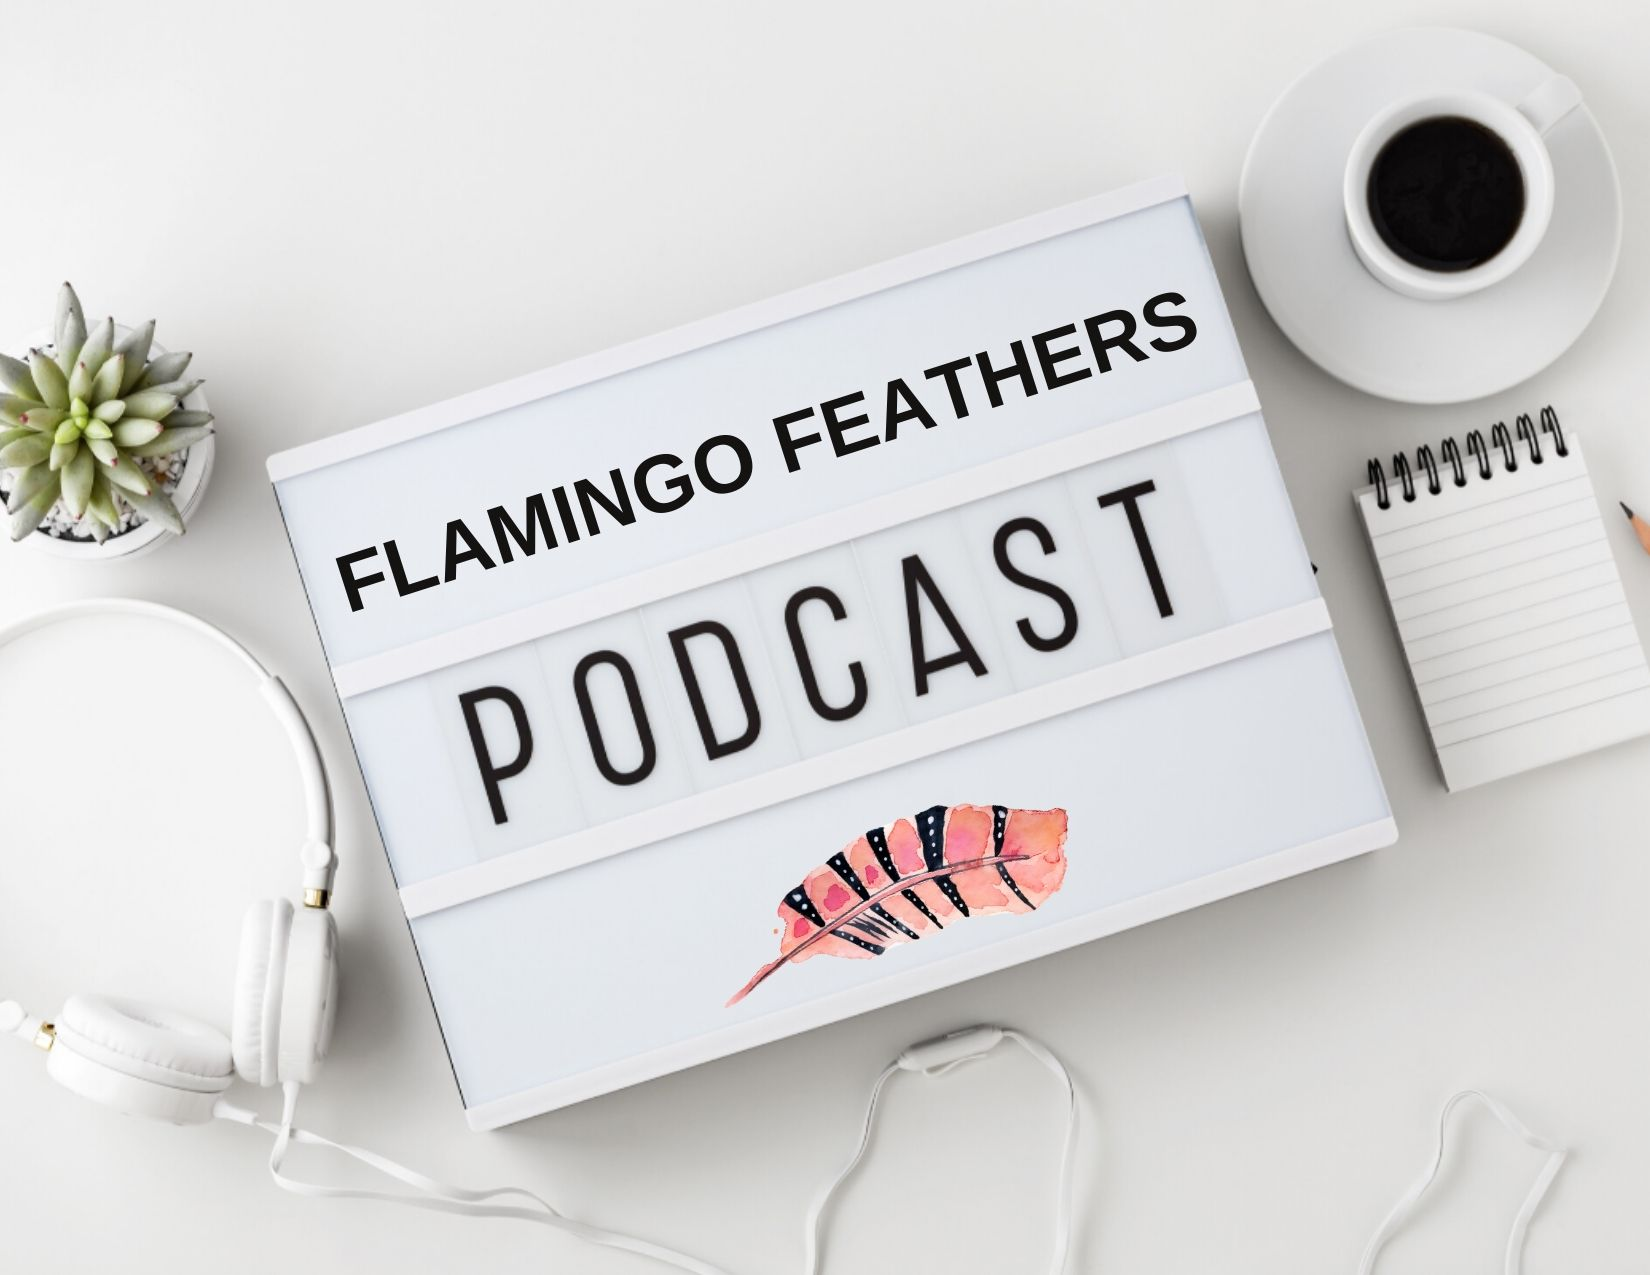 Flamingo Feathers Podcast